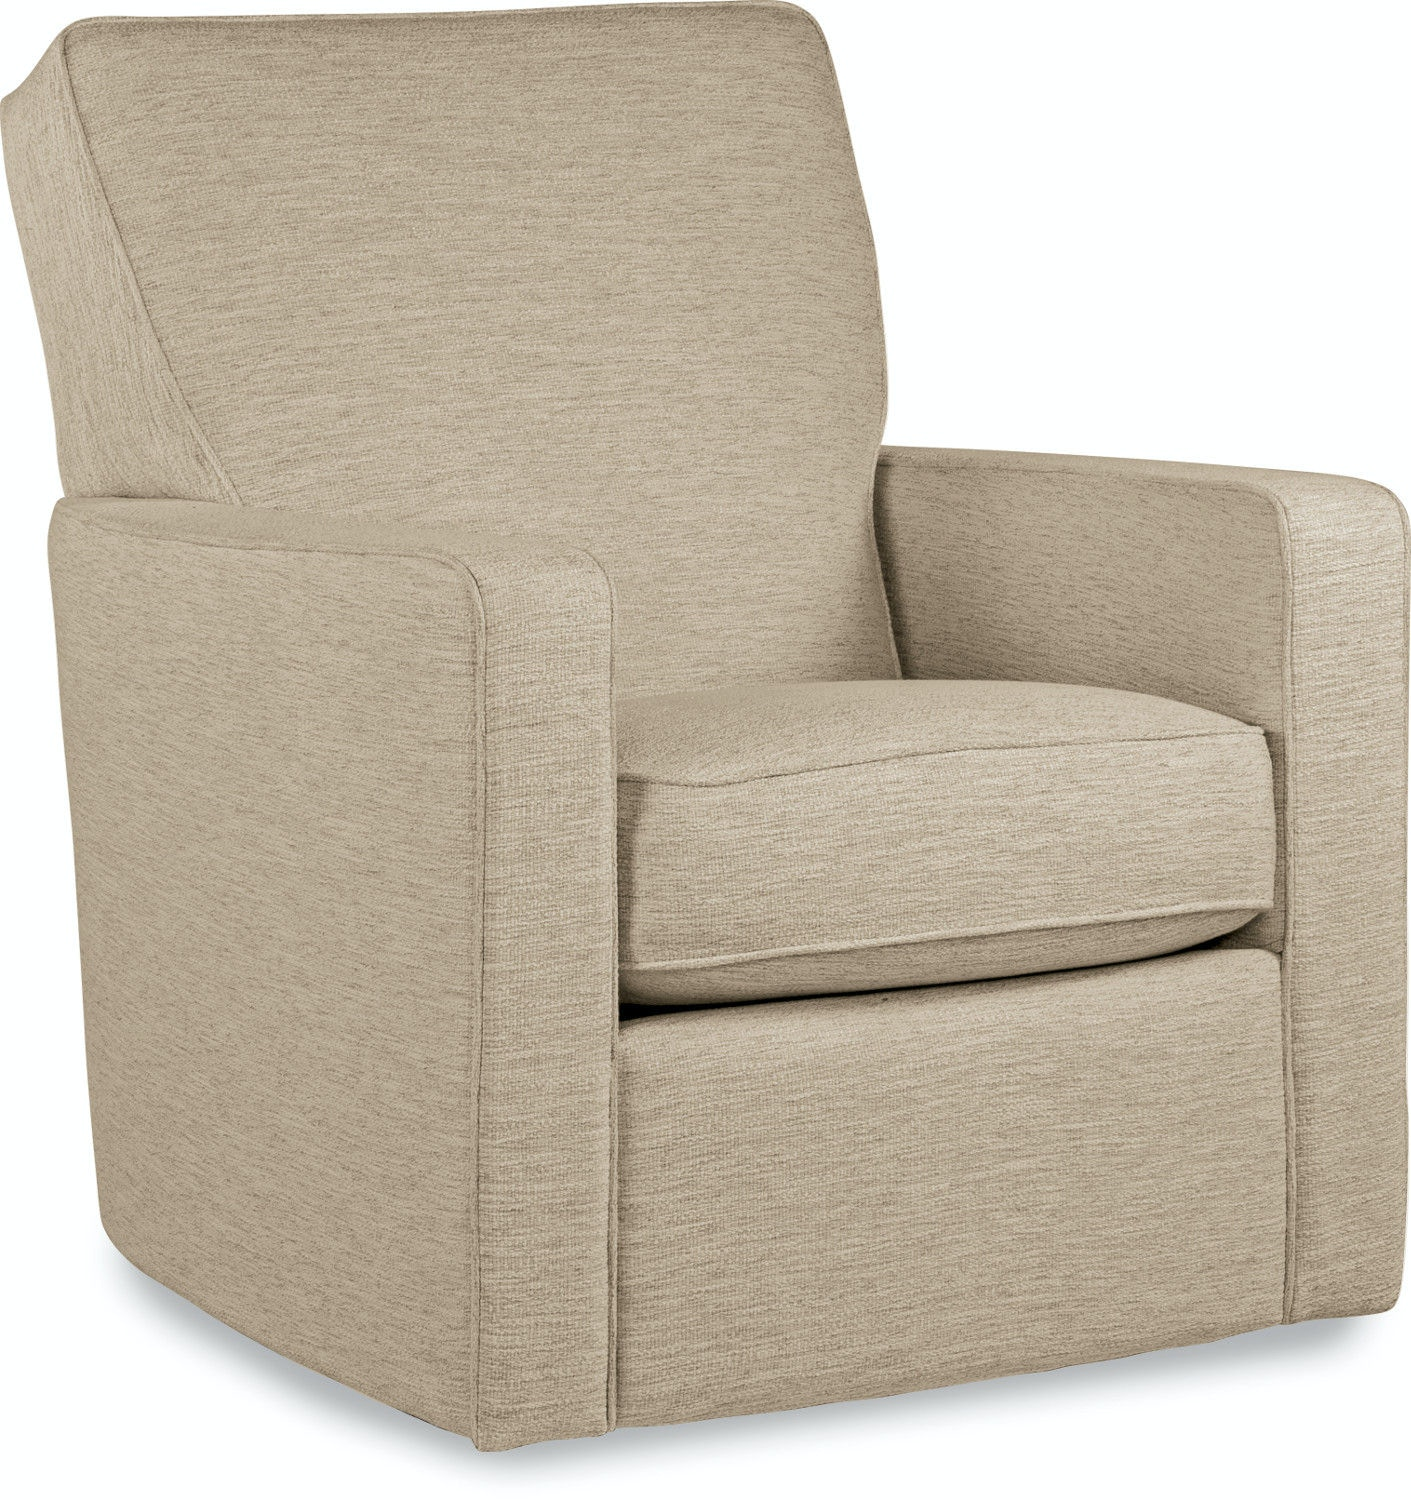 La-Z-Boy® Premier Swivel Occasional Chair 215479 ...  sc 1 st  Lynch Furniture : occasional chairs swivel - Cheerinfomania.Com